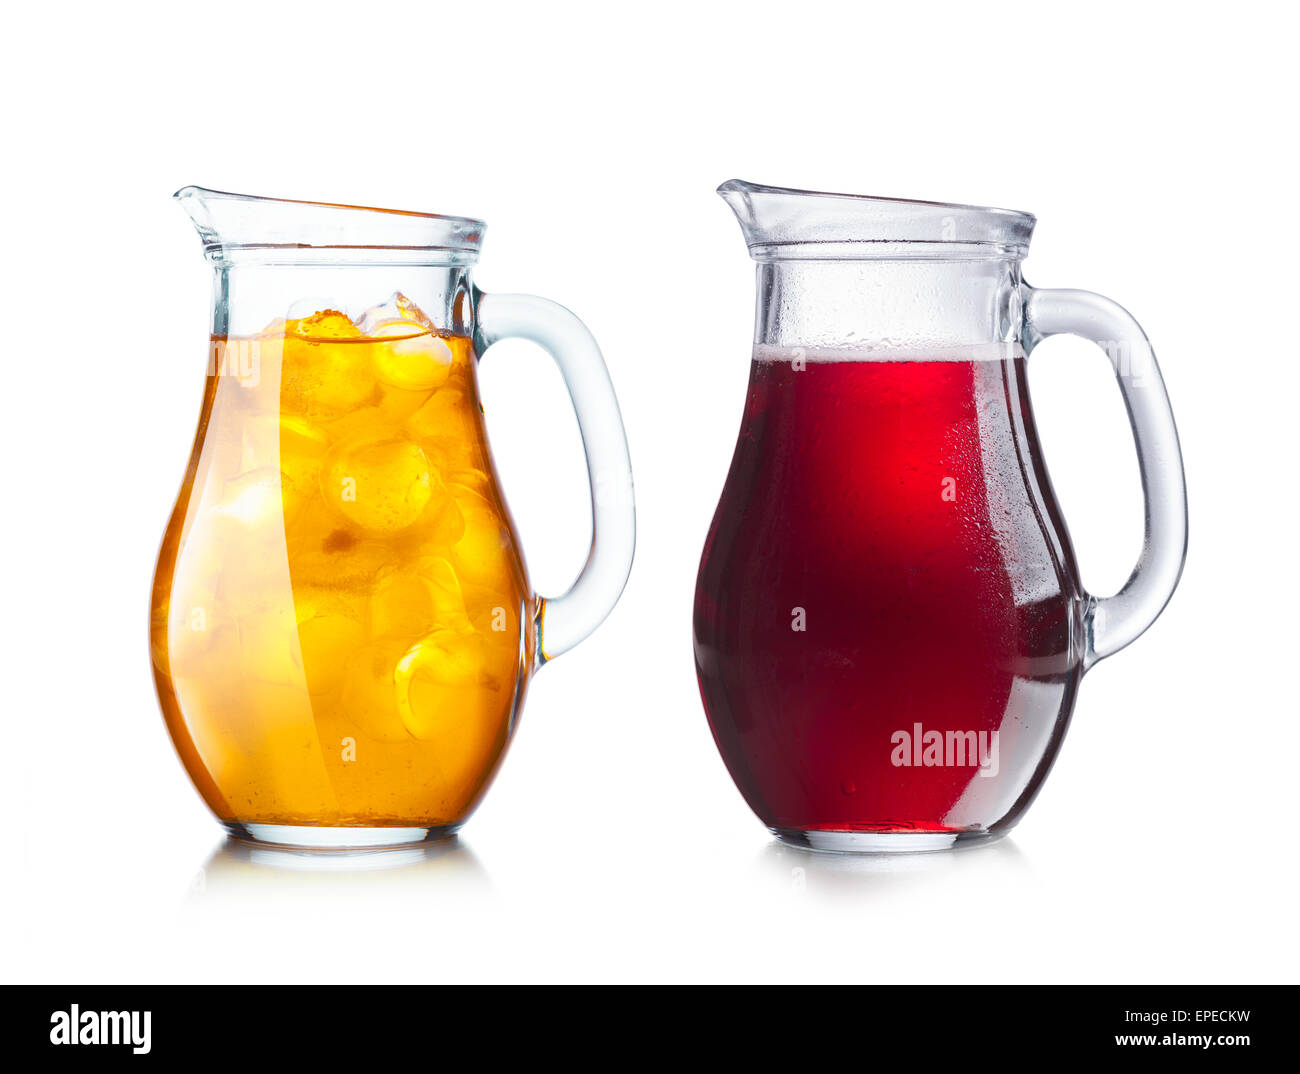 Two pitchers (jugs) with transparent and opaque liquids of dark and light tonality for easy color replacement. - Stock Image